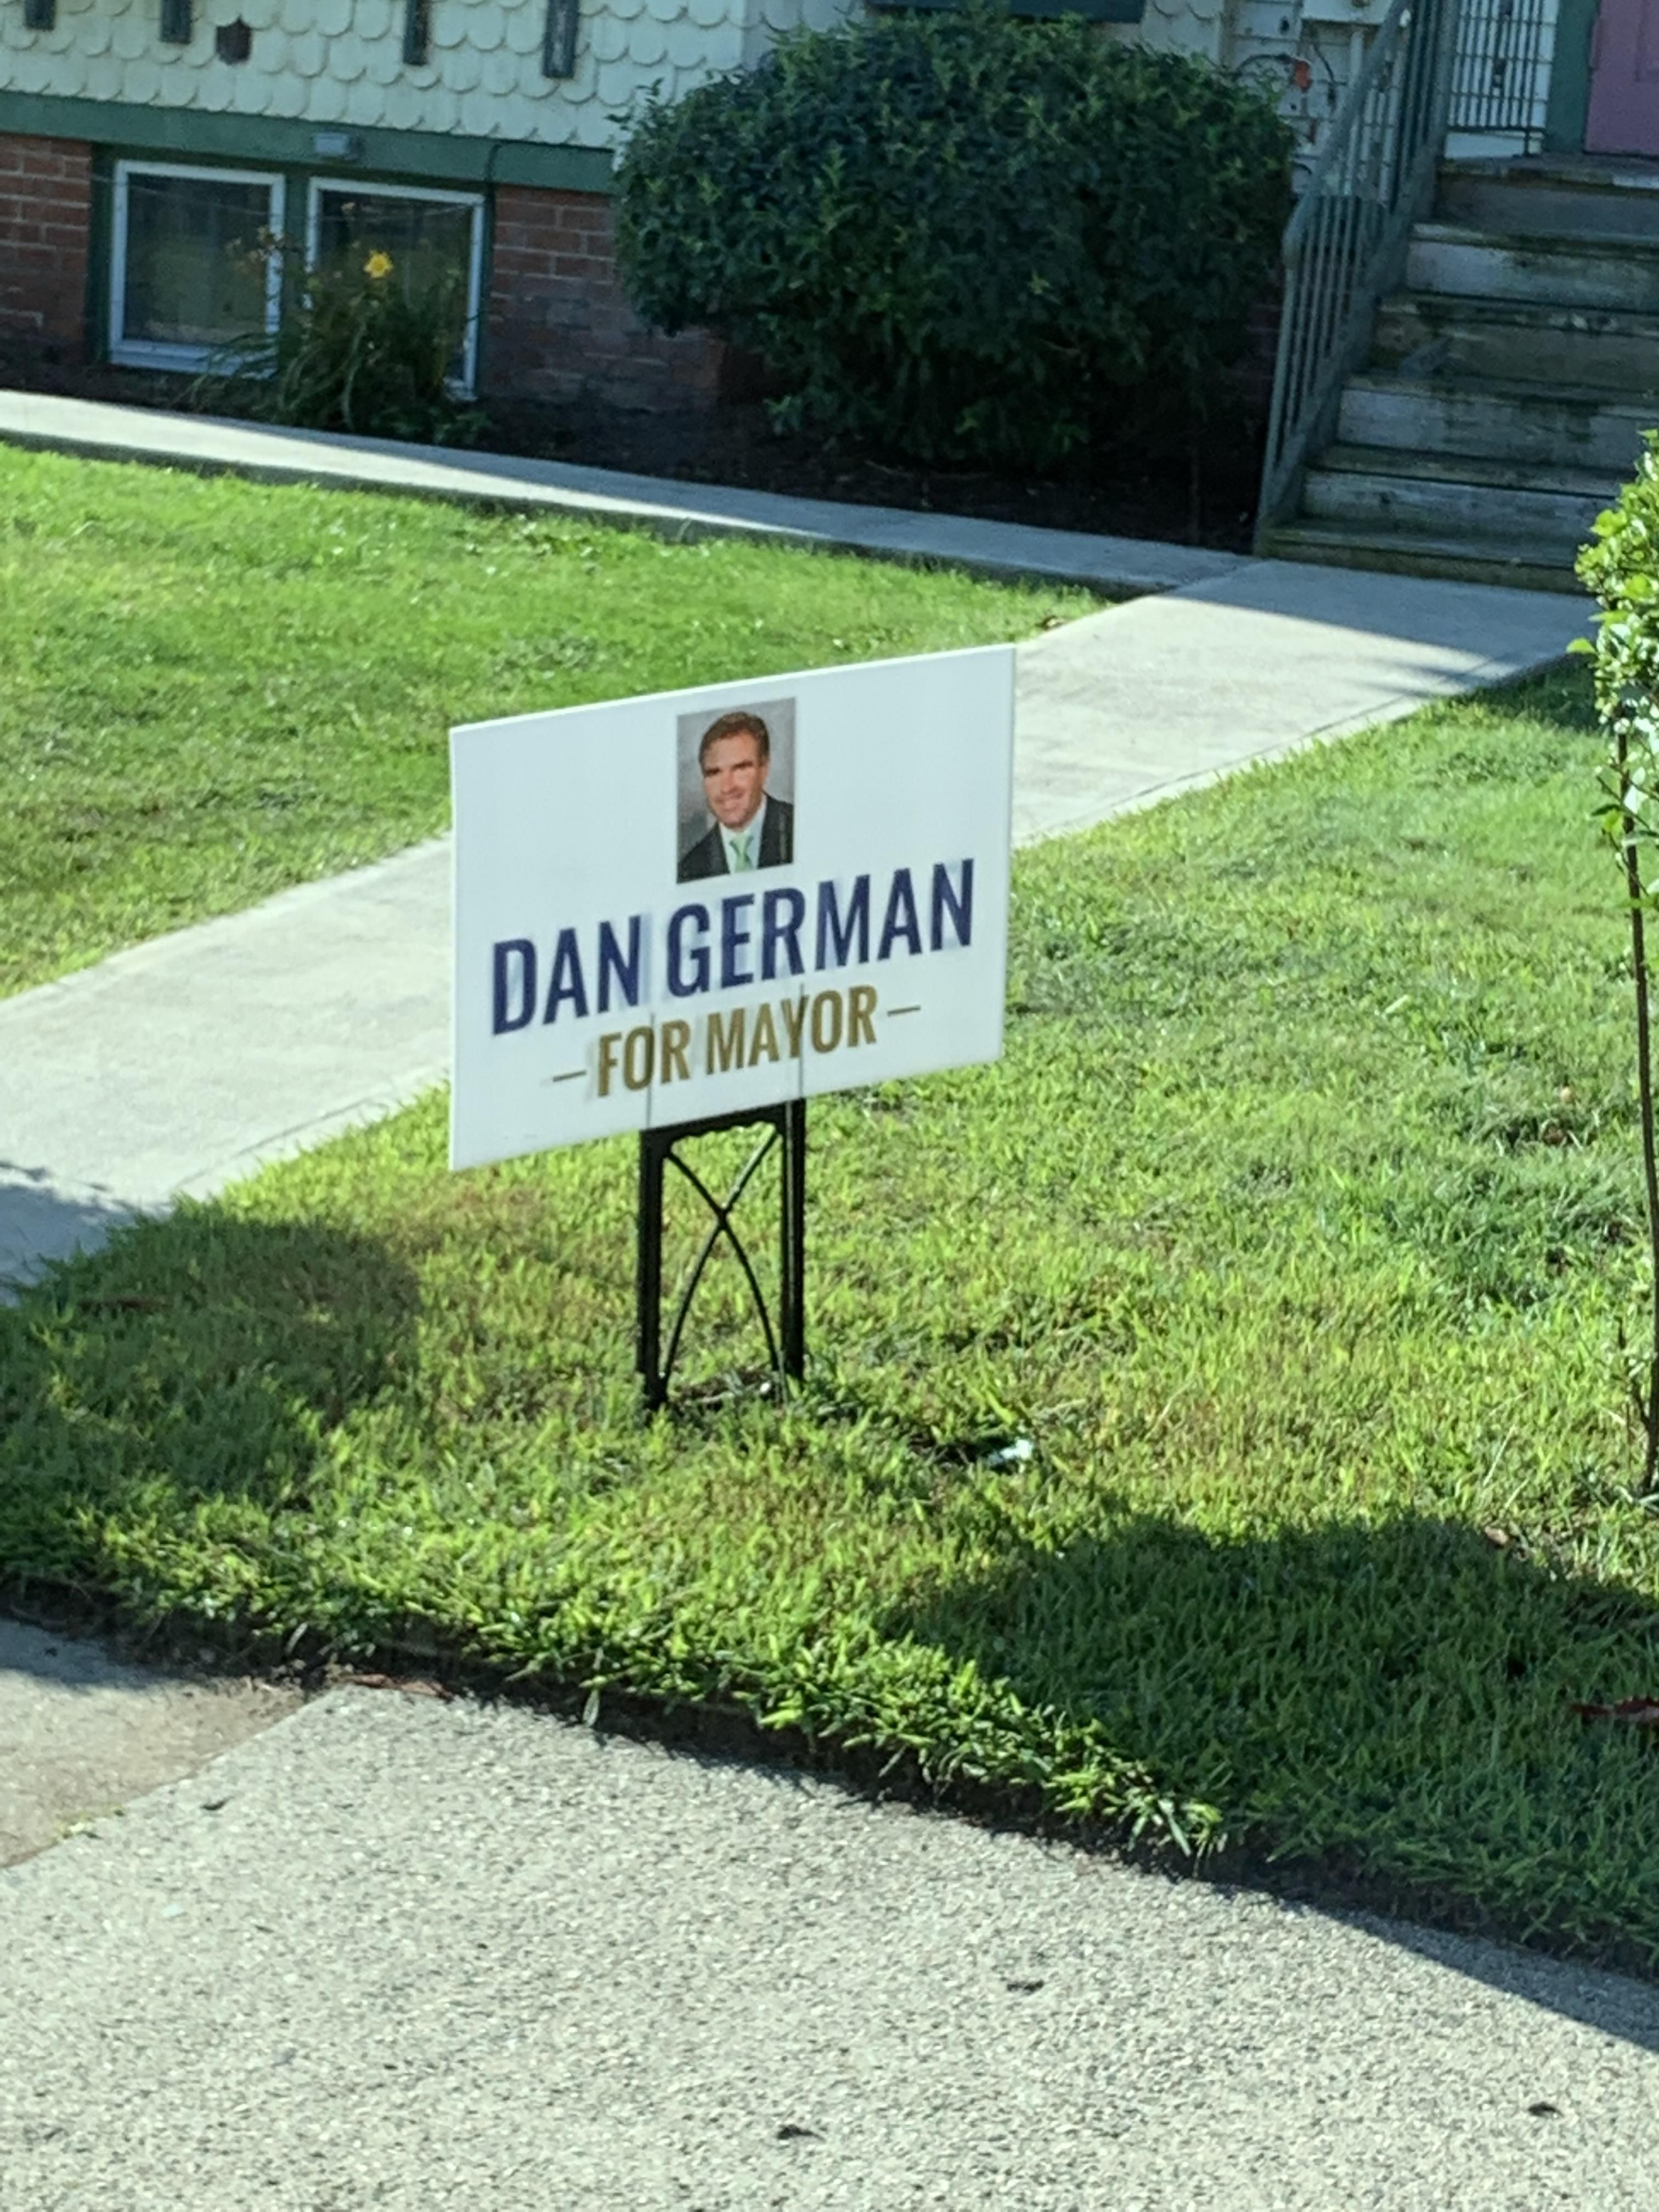 Maybe let's not elect someone named Danger Man...